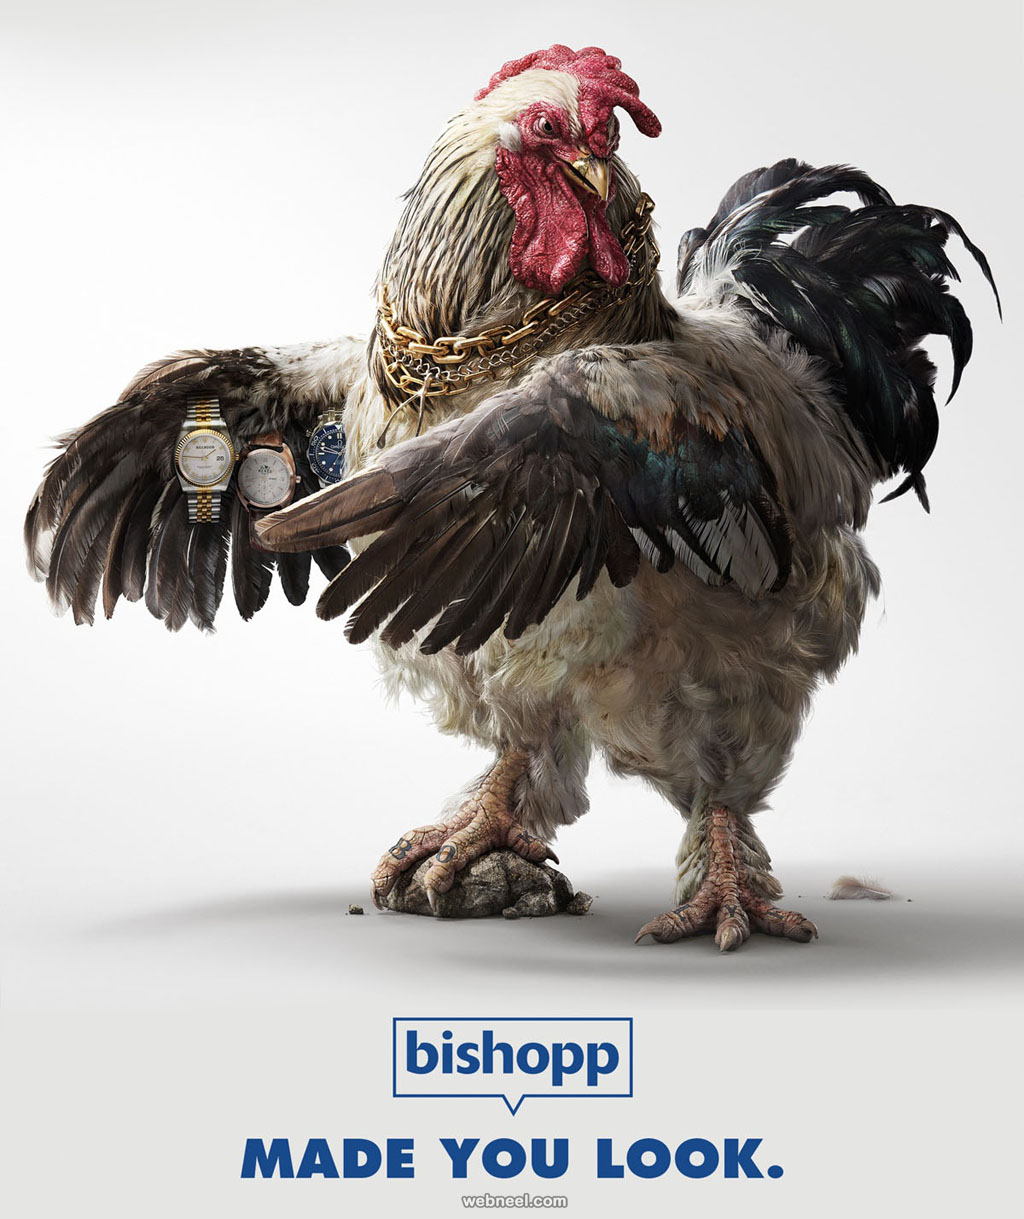 bishopp outdoor print advertising by becmccall